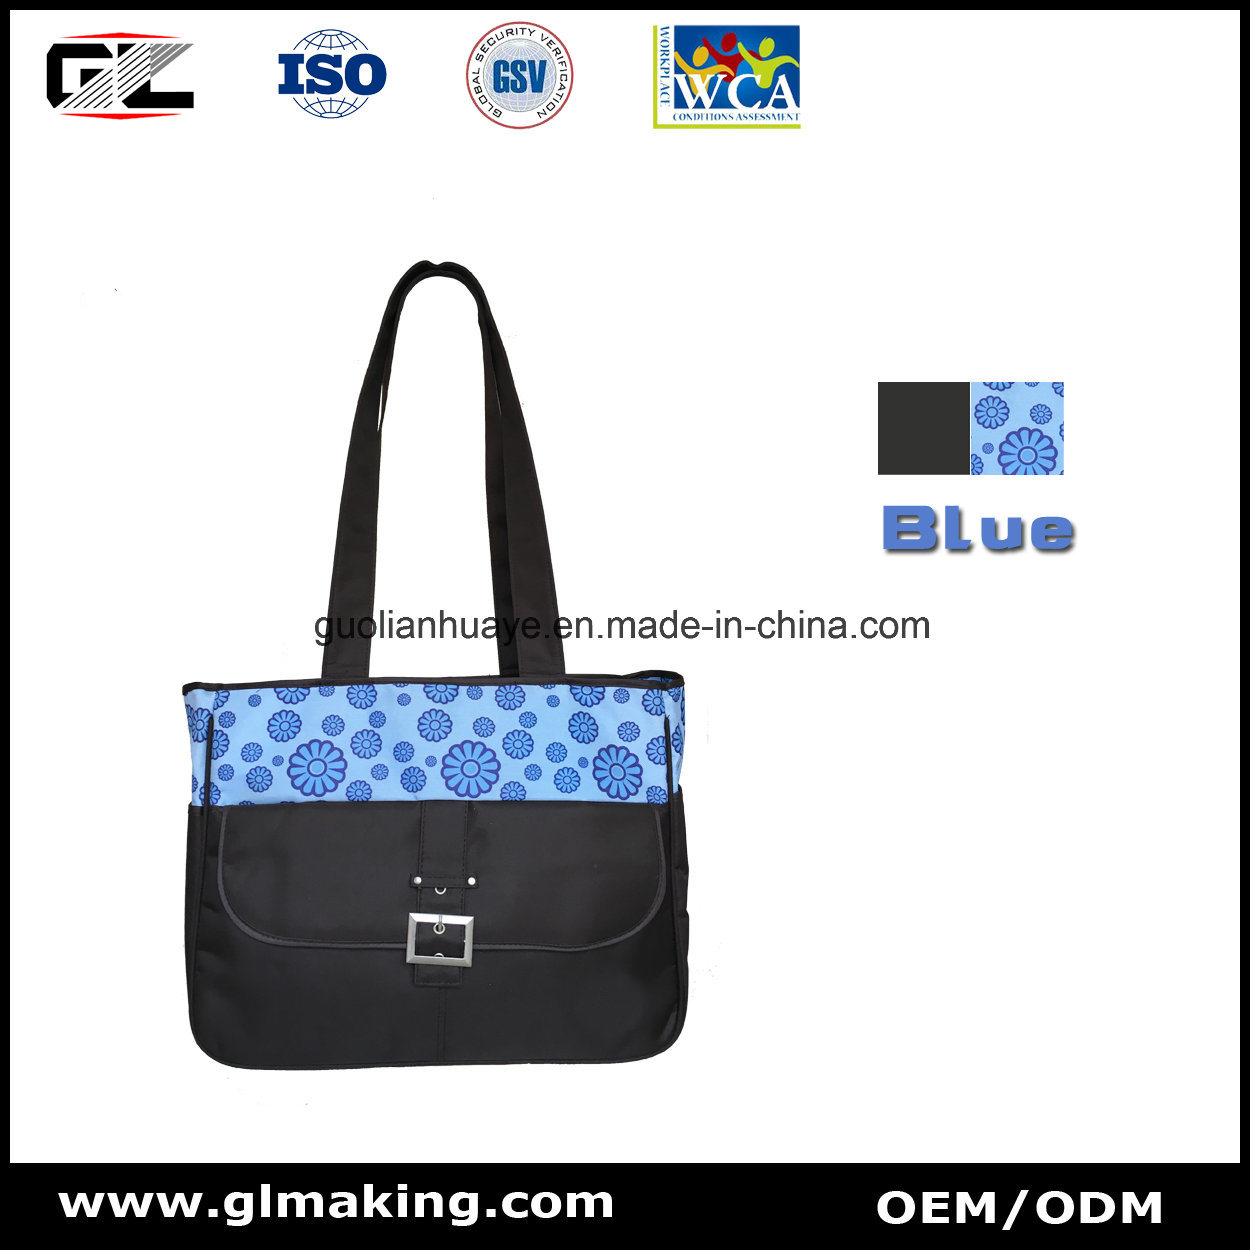 Gl023 Diaper Bag From OEM Manufacturer